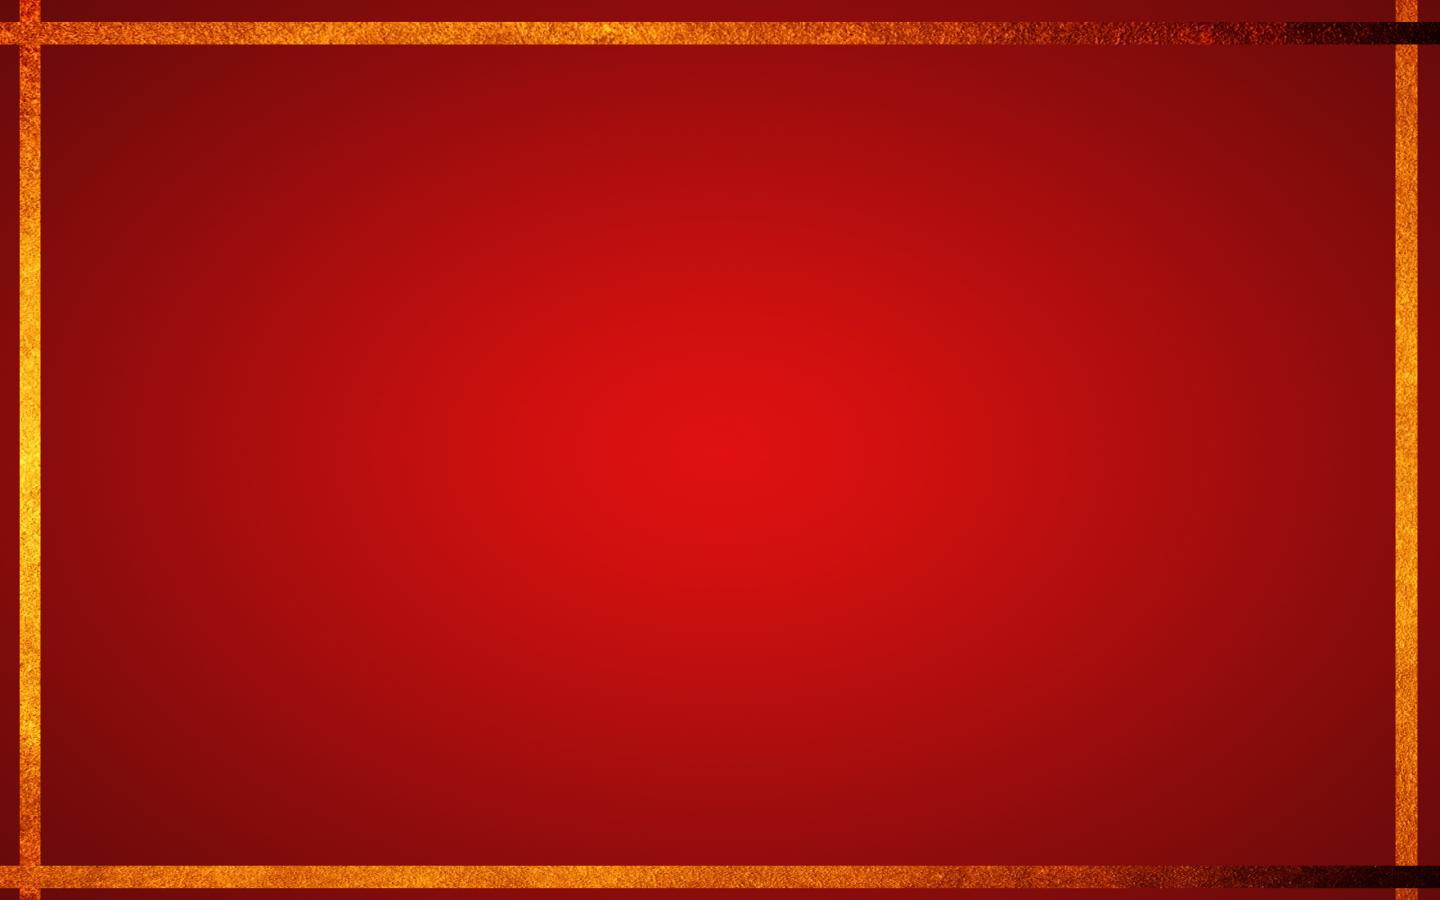 red chinese wallpaper designs 16 of 20 with solid red and